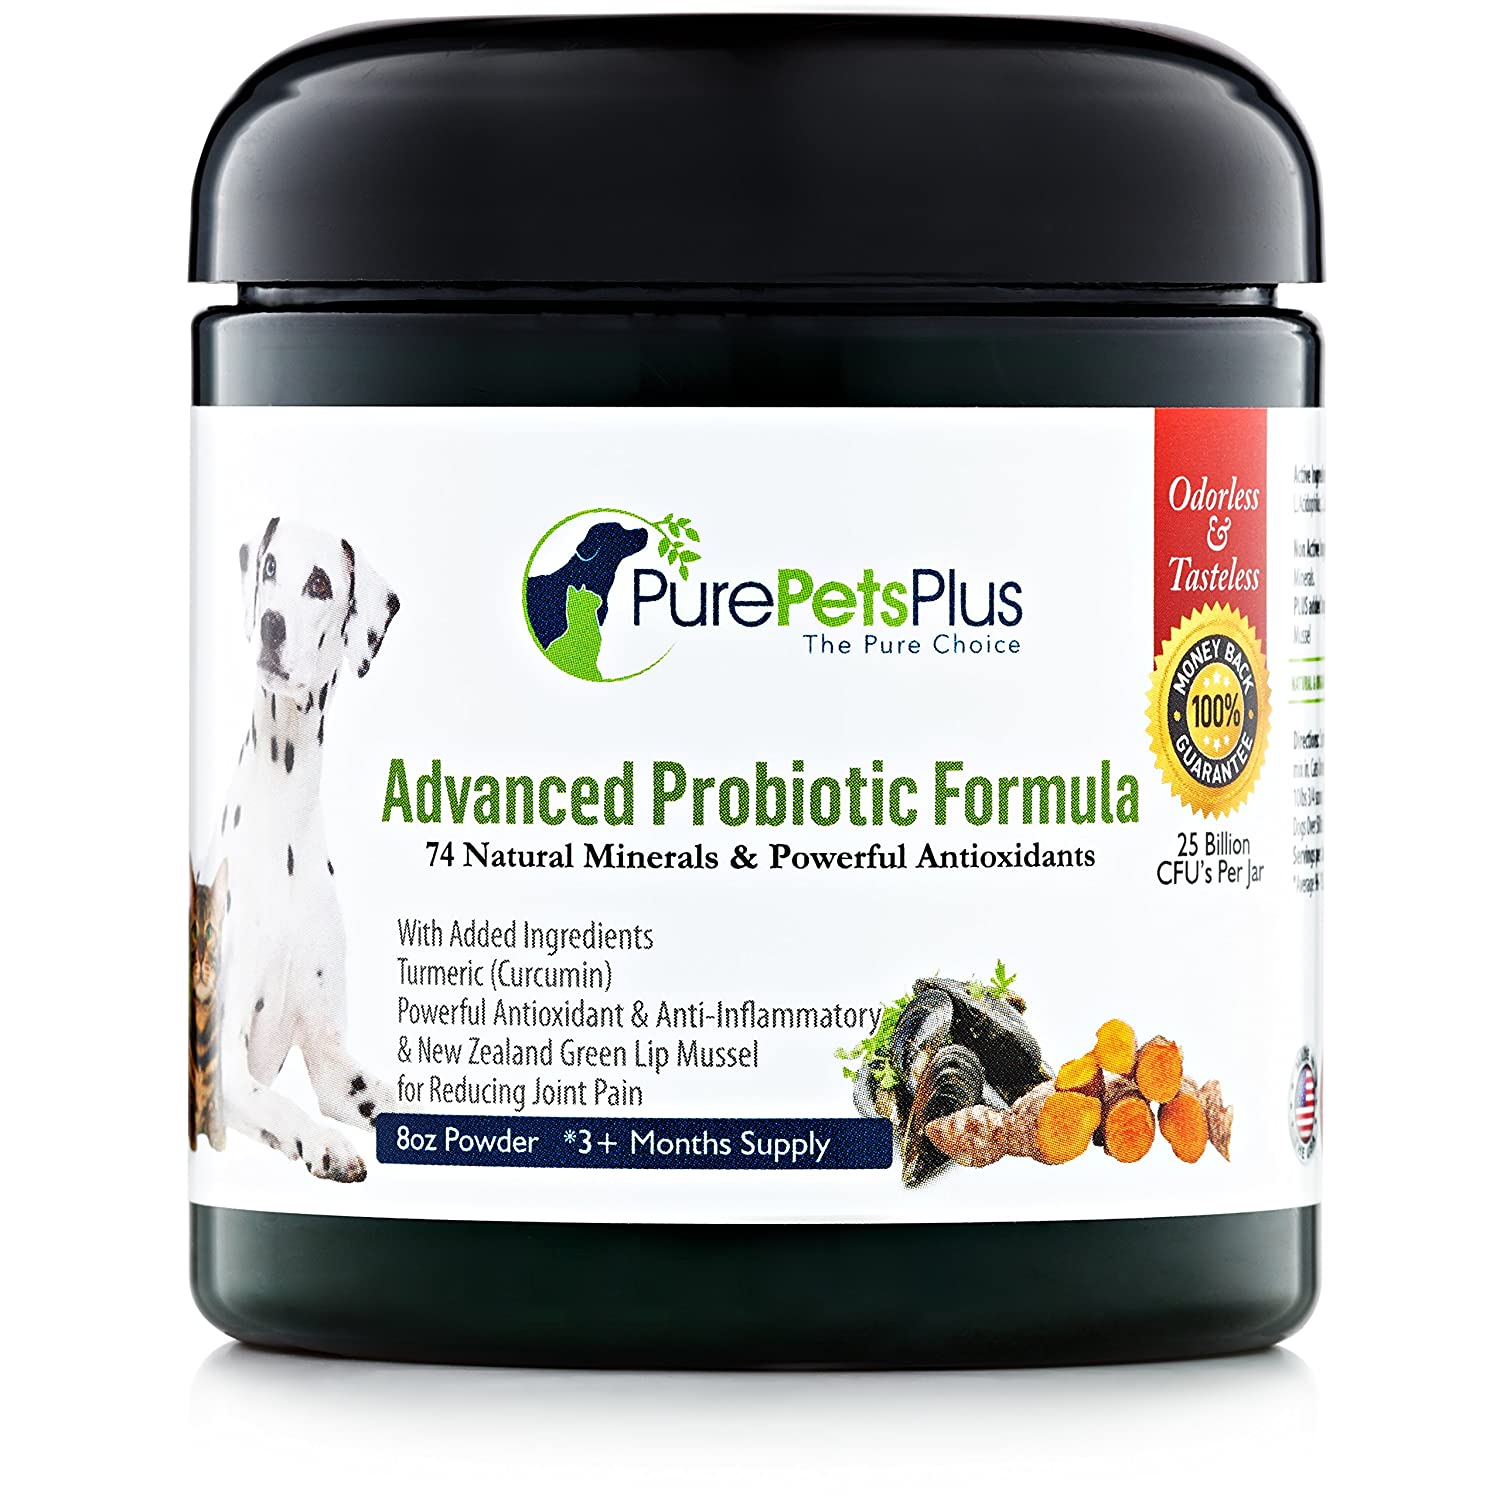 Advanced Probiotics for Dogs Supplement Powder with Organic Turmeric and Green Lipped Mussel to Support Hip, Skin and Digestive Health